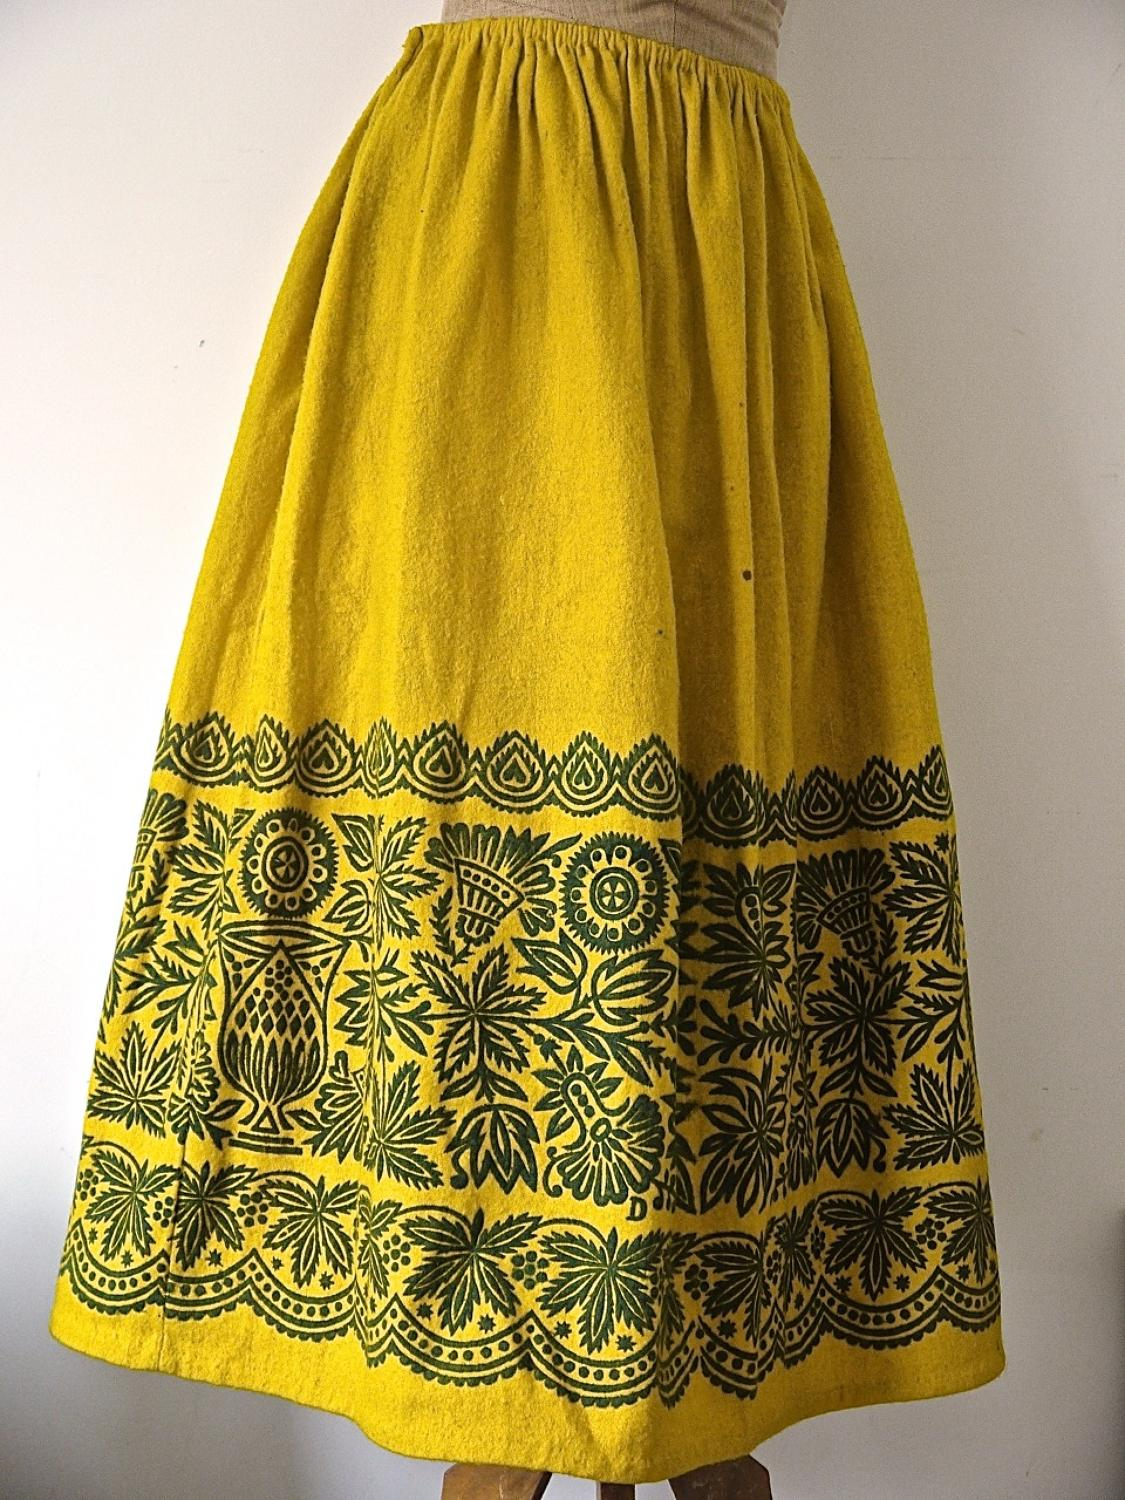 19th century Spanish Yellow Wool Skirt